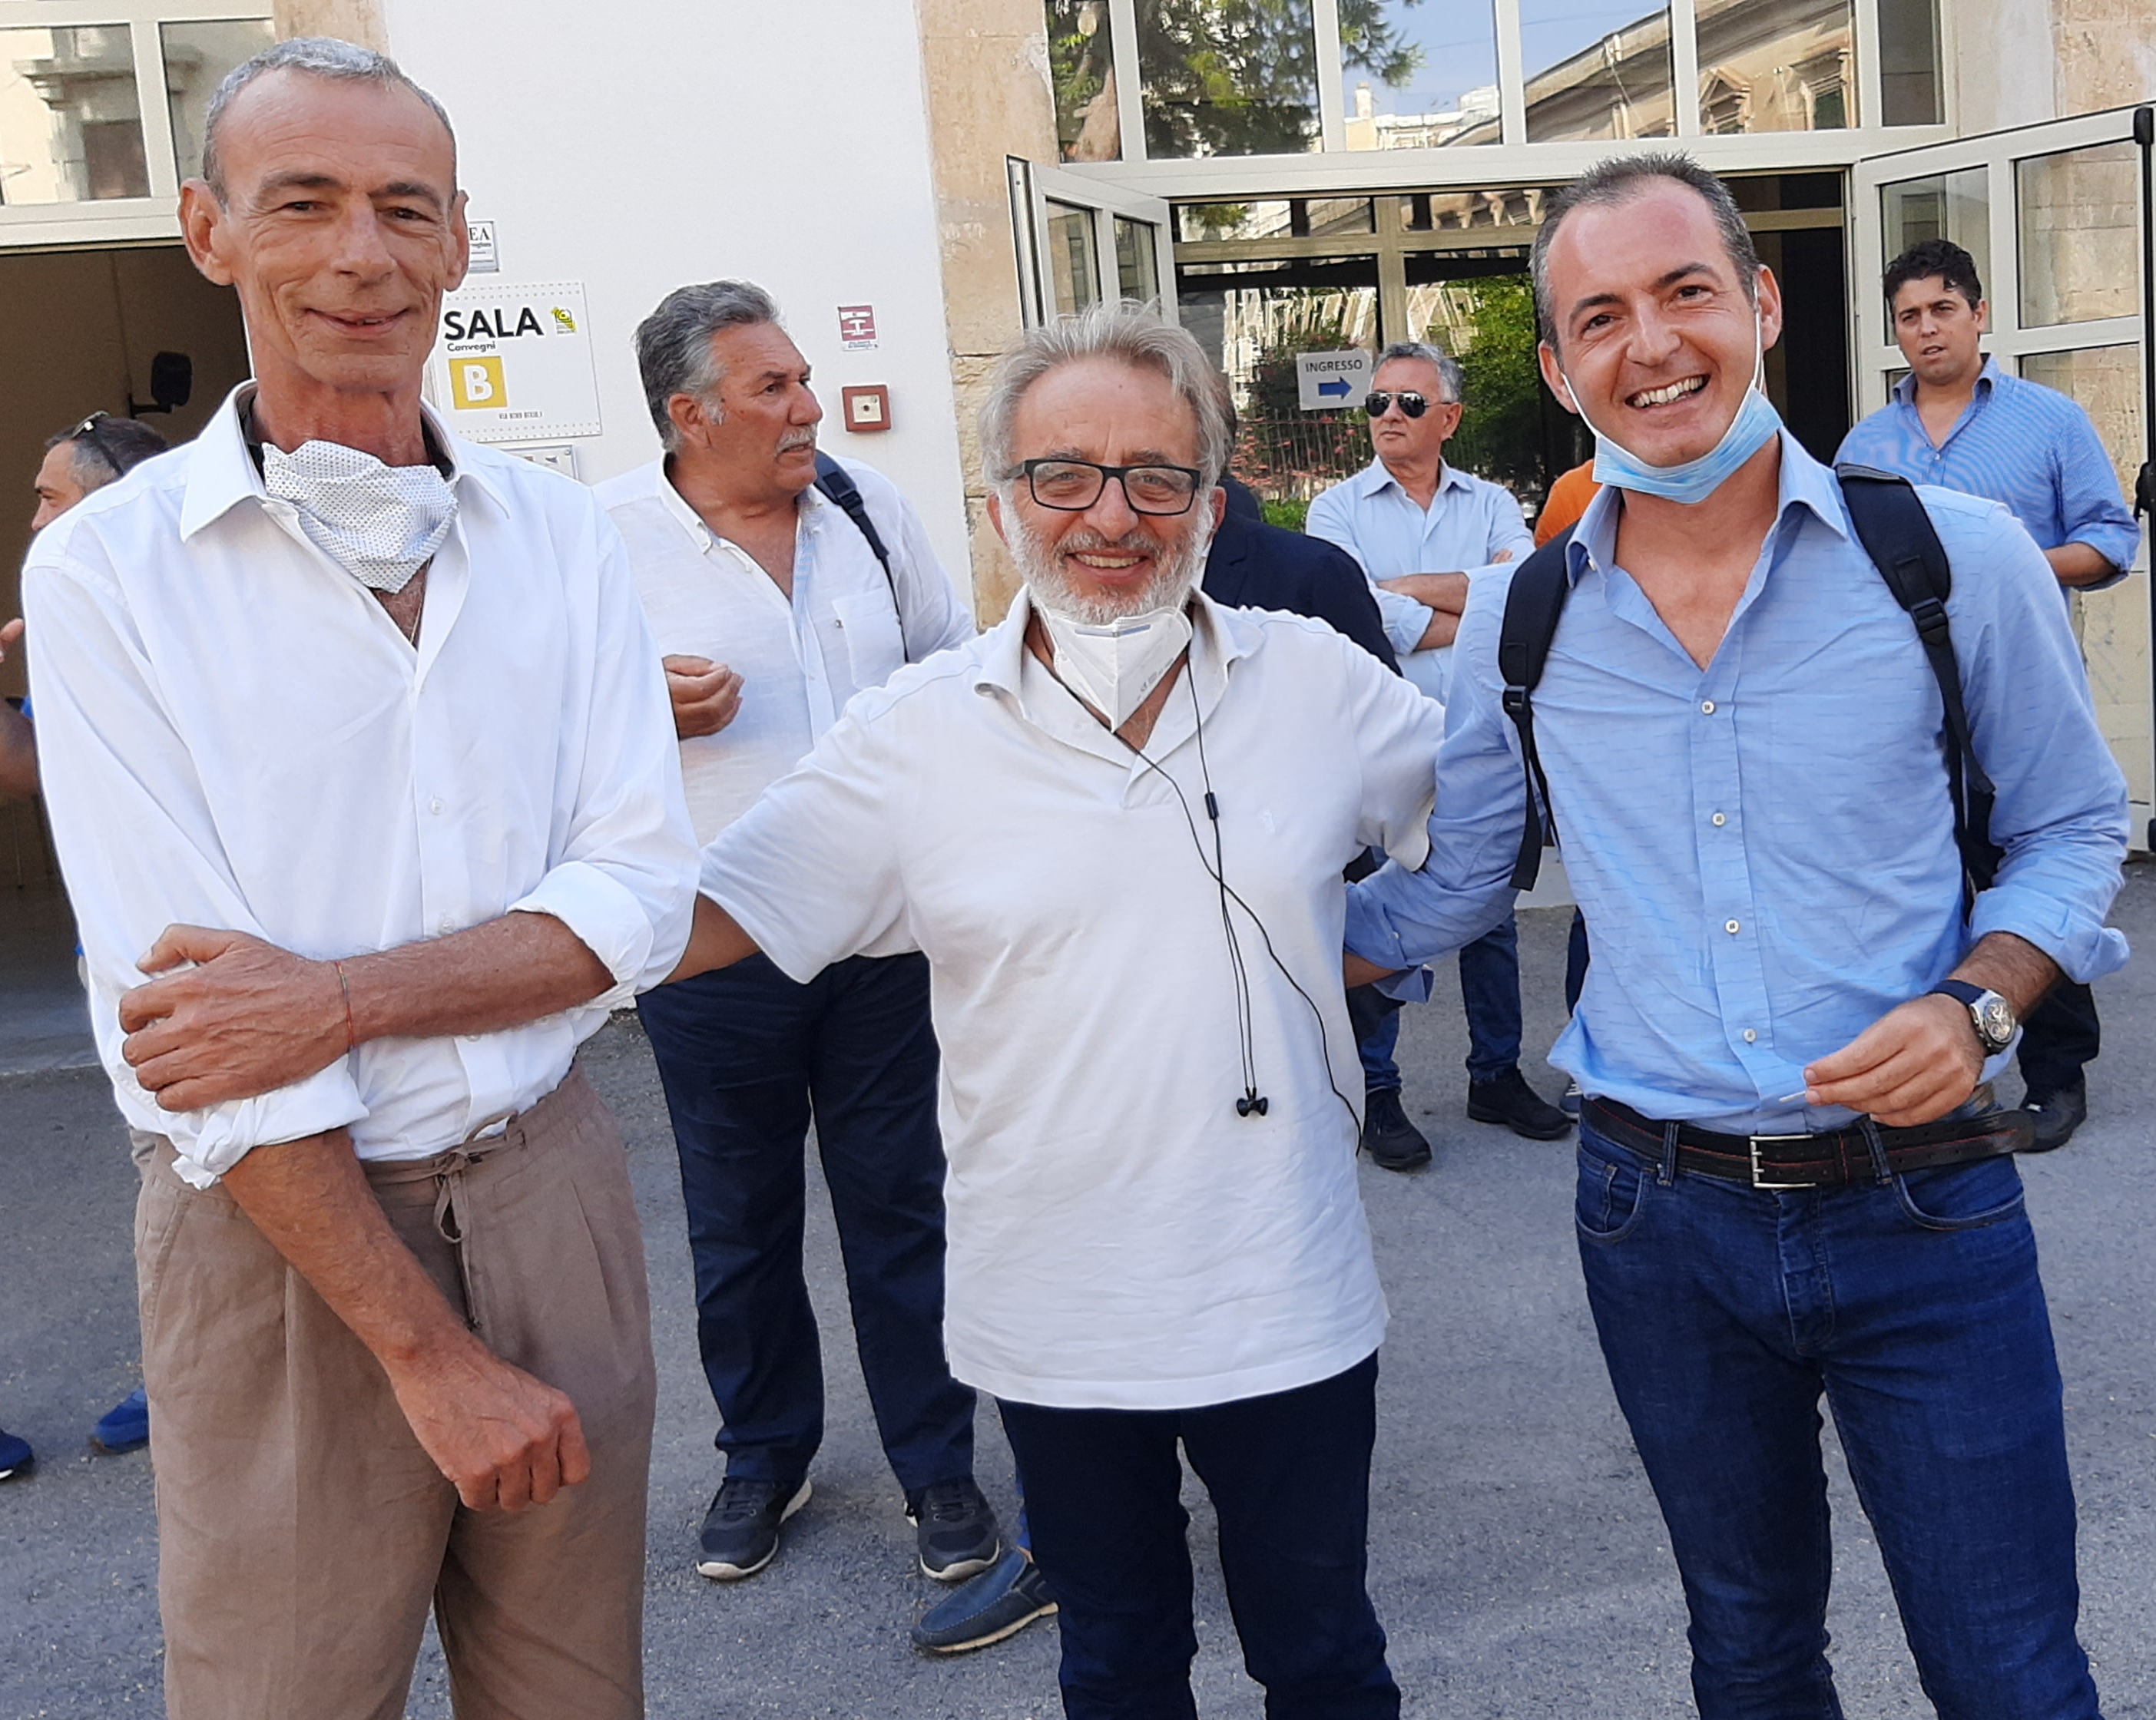 'Progetto Siracusa' riunisce il 'governo ombra' all'Urban Center